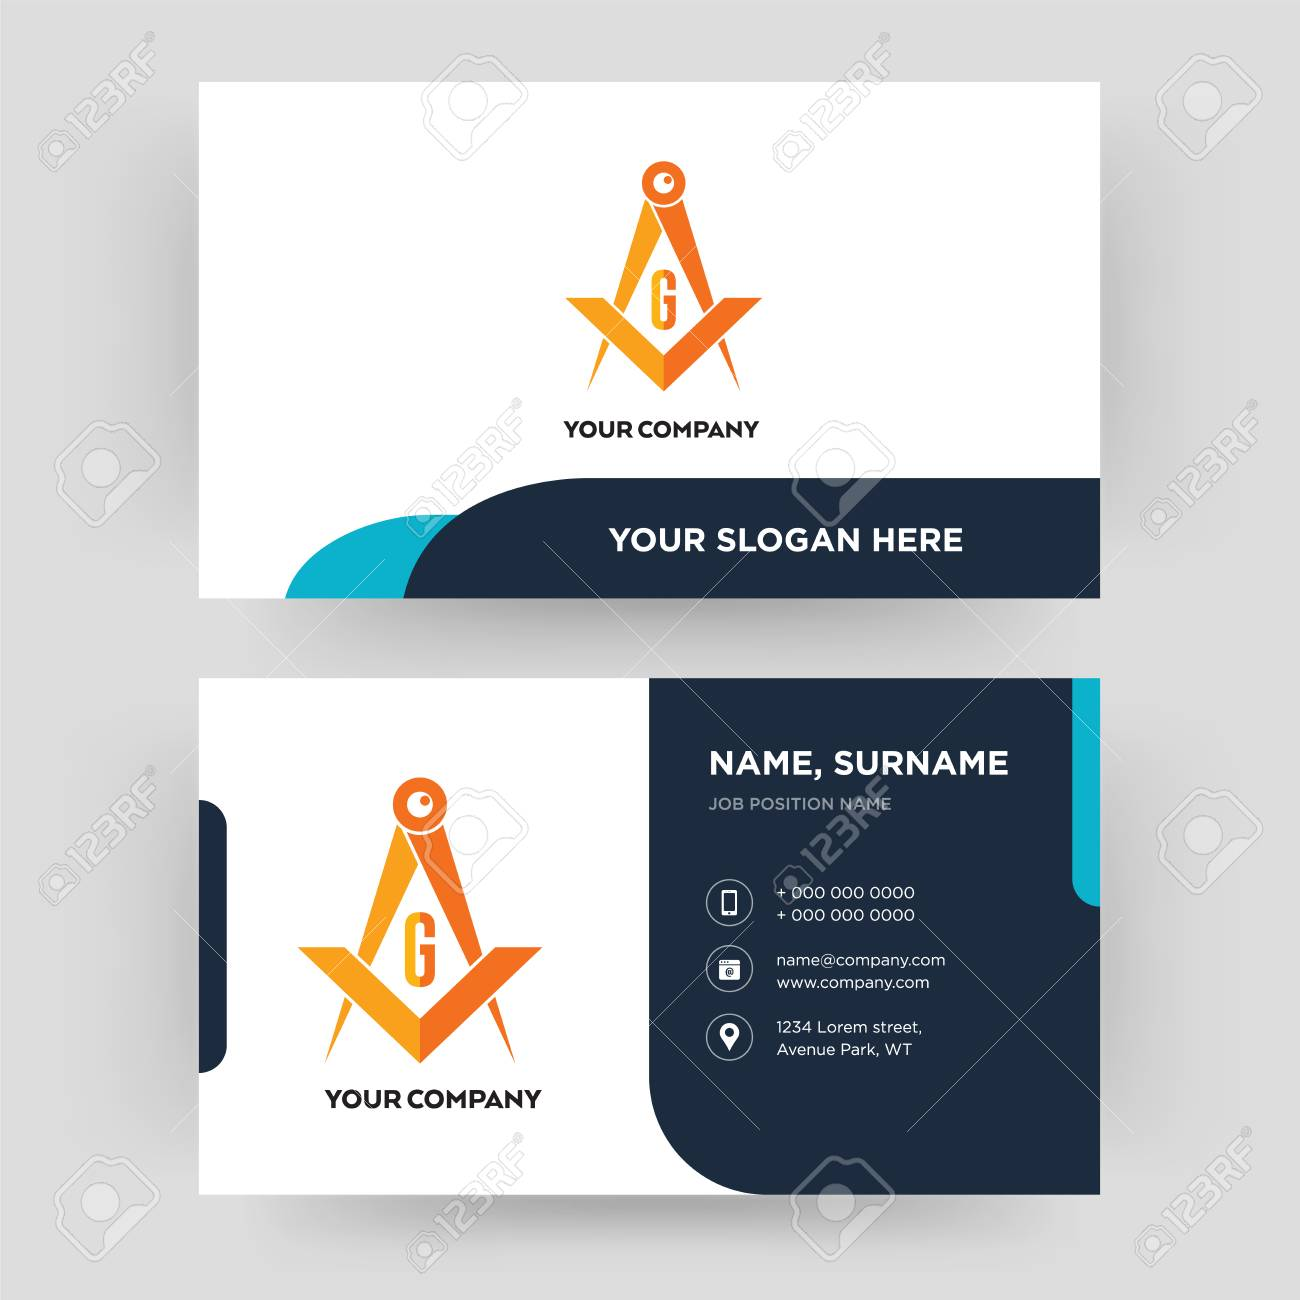 masonic, business card design template, Visiting for your company,